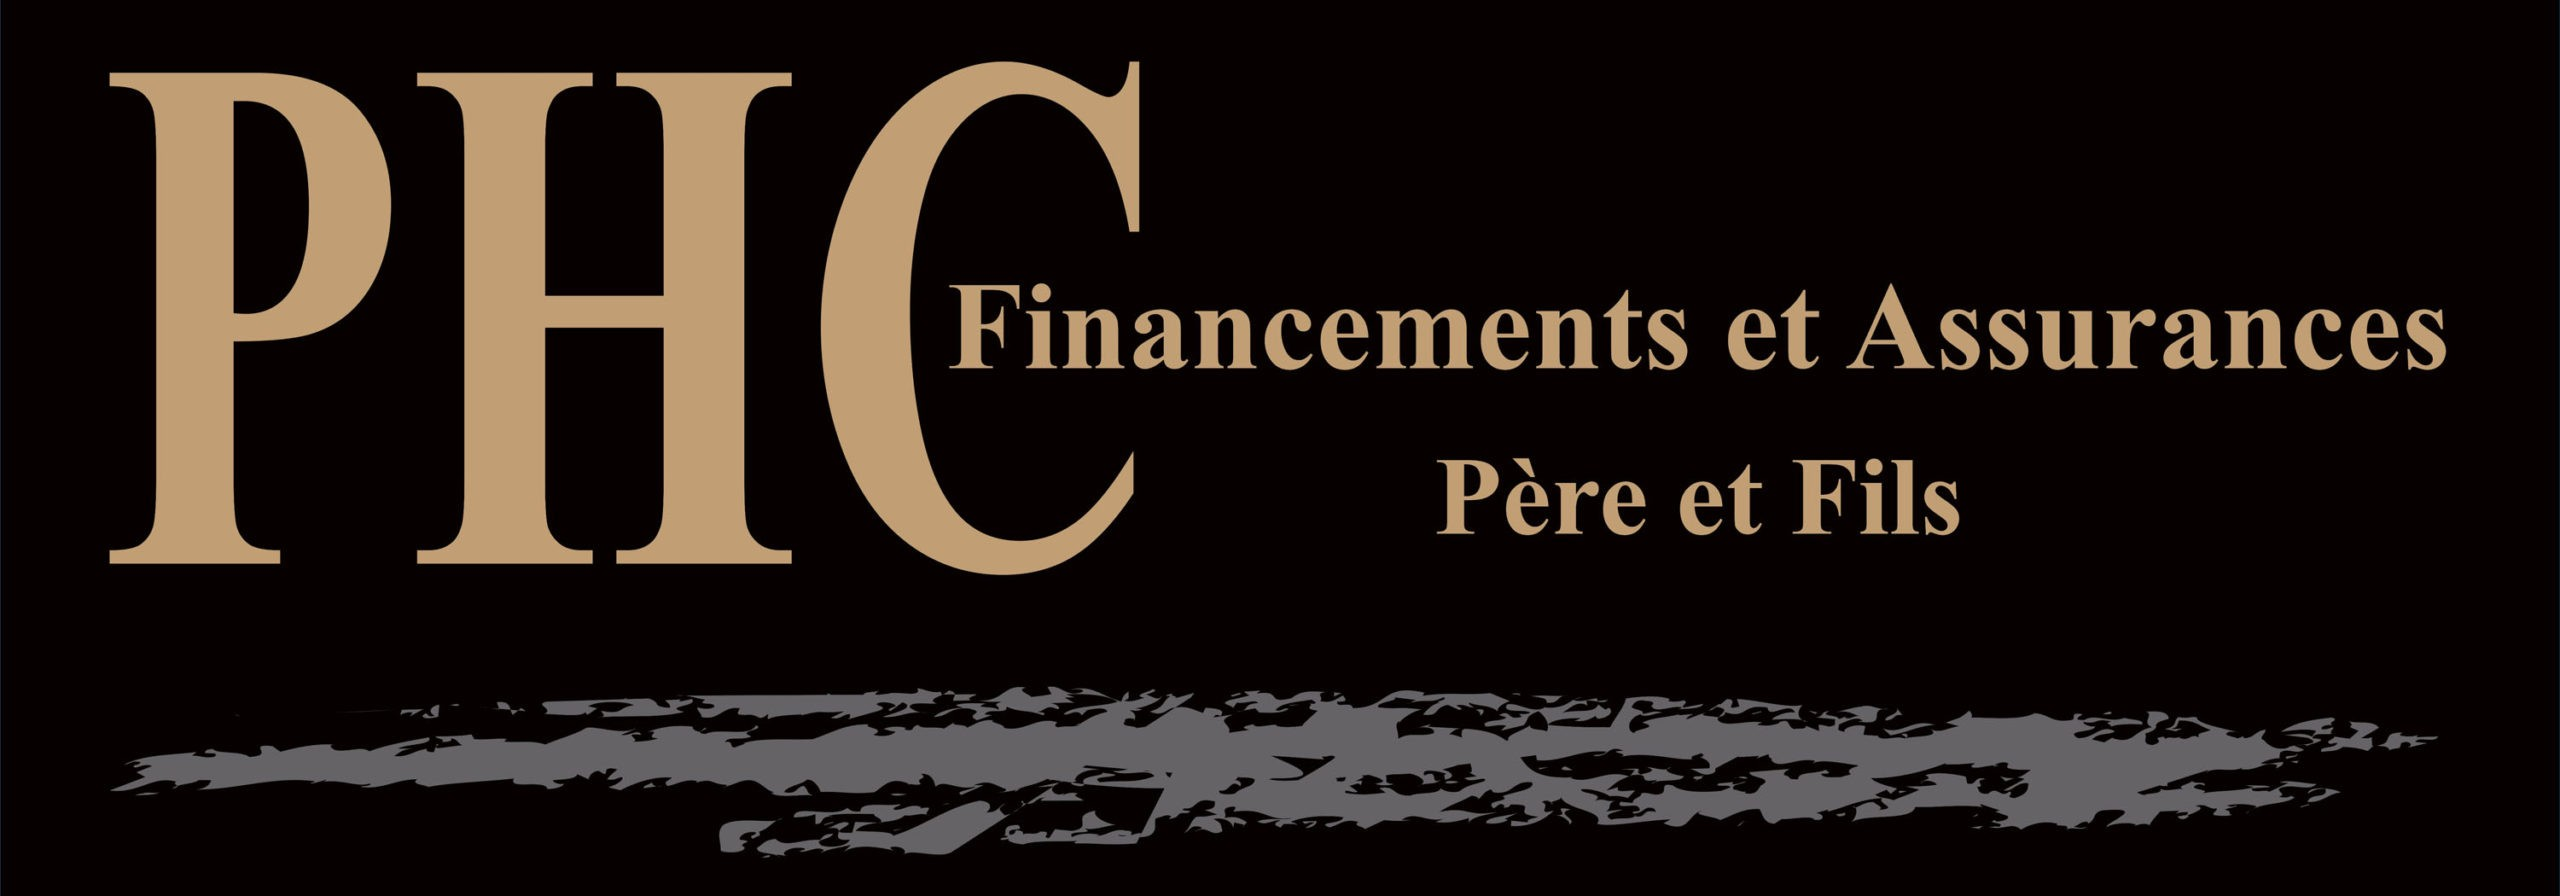 phcfinancement